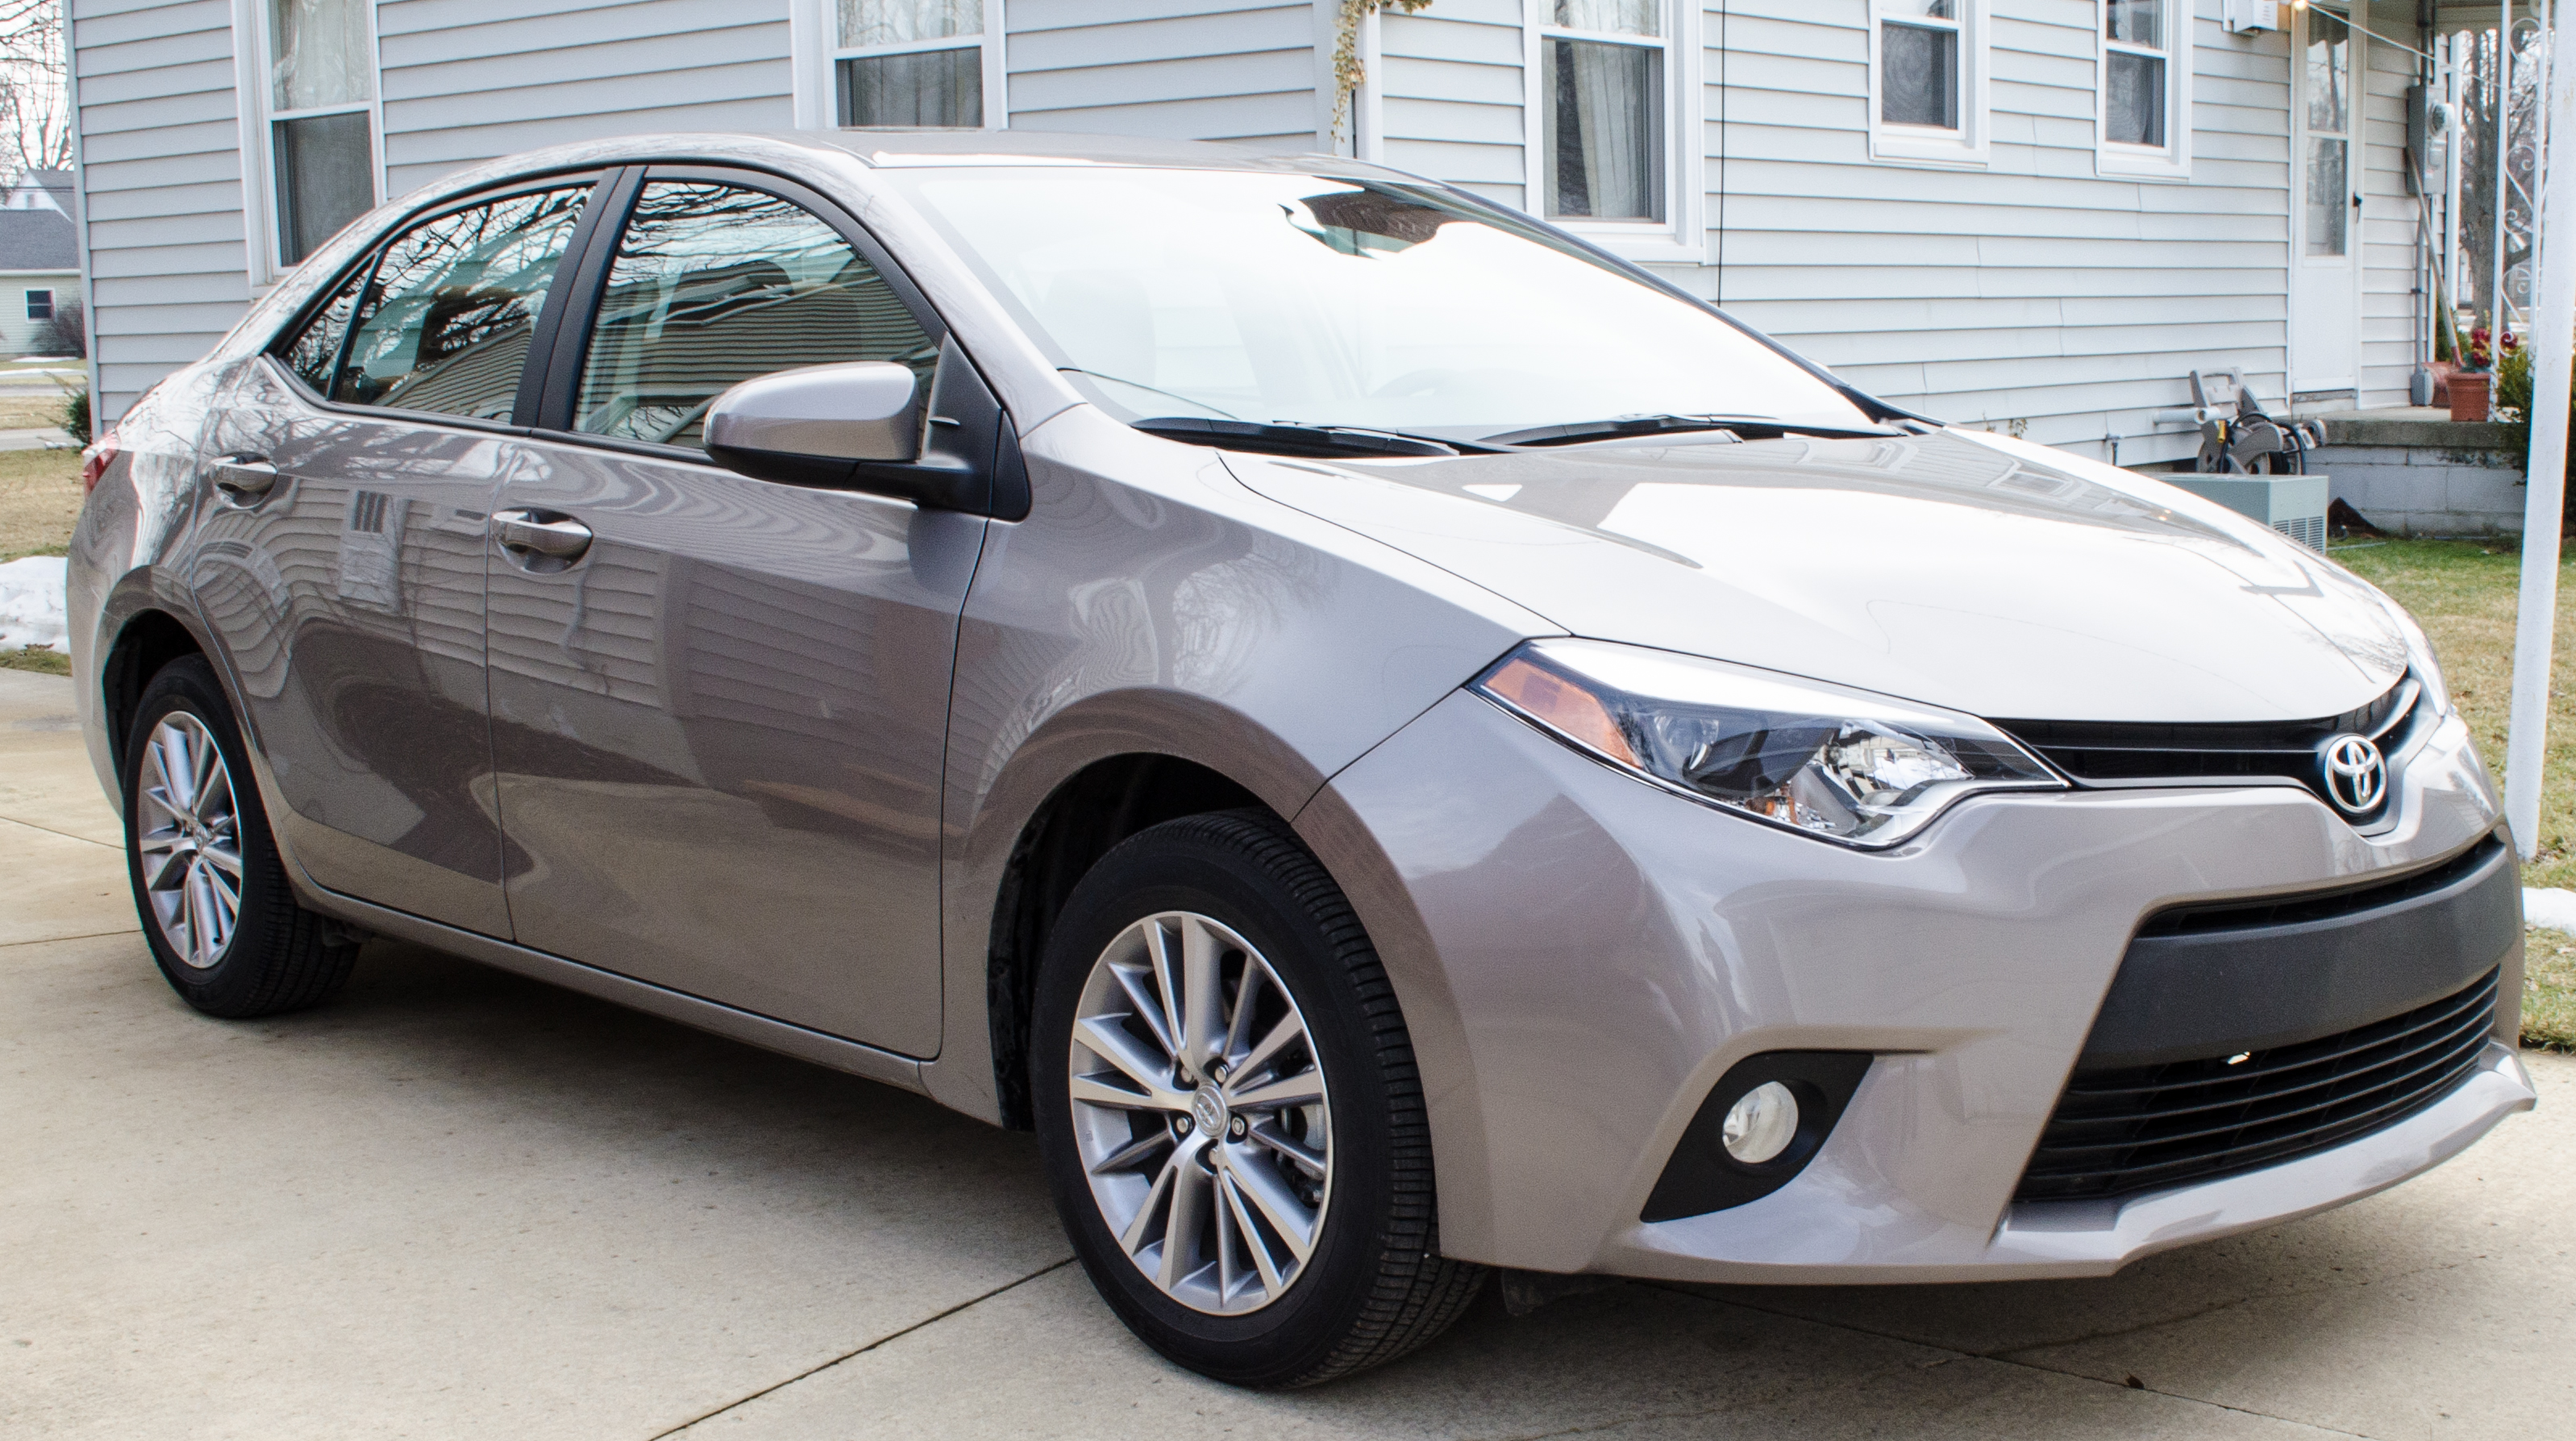 2014 toyota corolla review there 39 s a reason this car is a top seller motor review. Black Bedroom Furniture Sets. Home Design Ideas